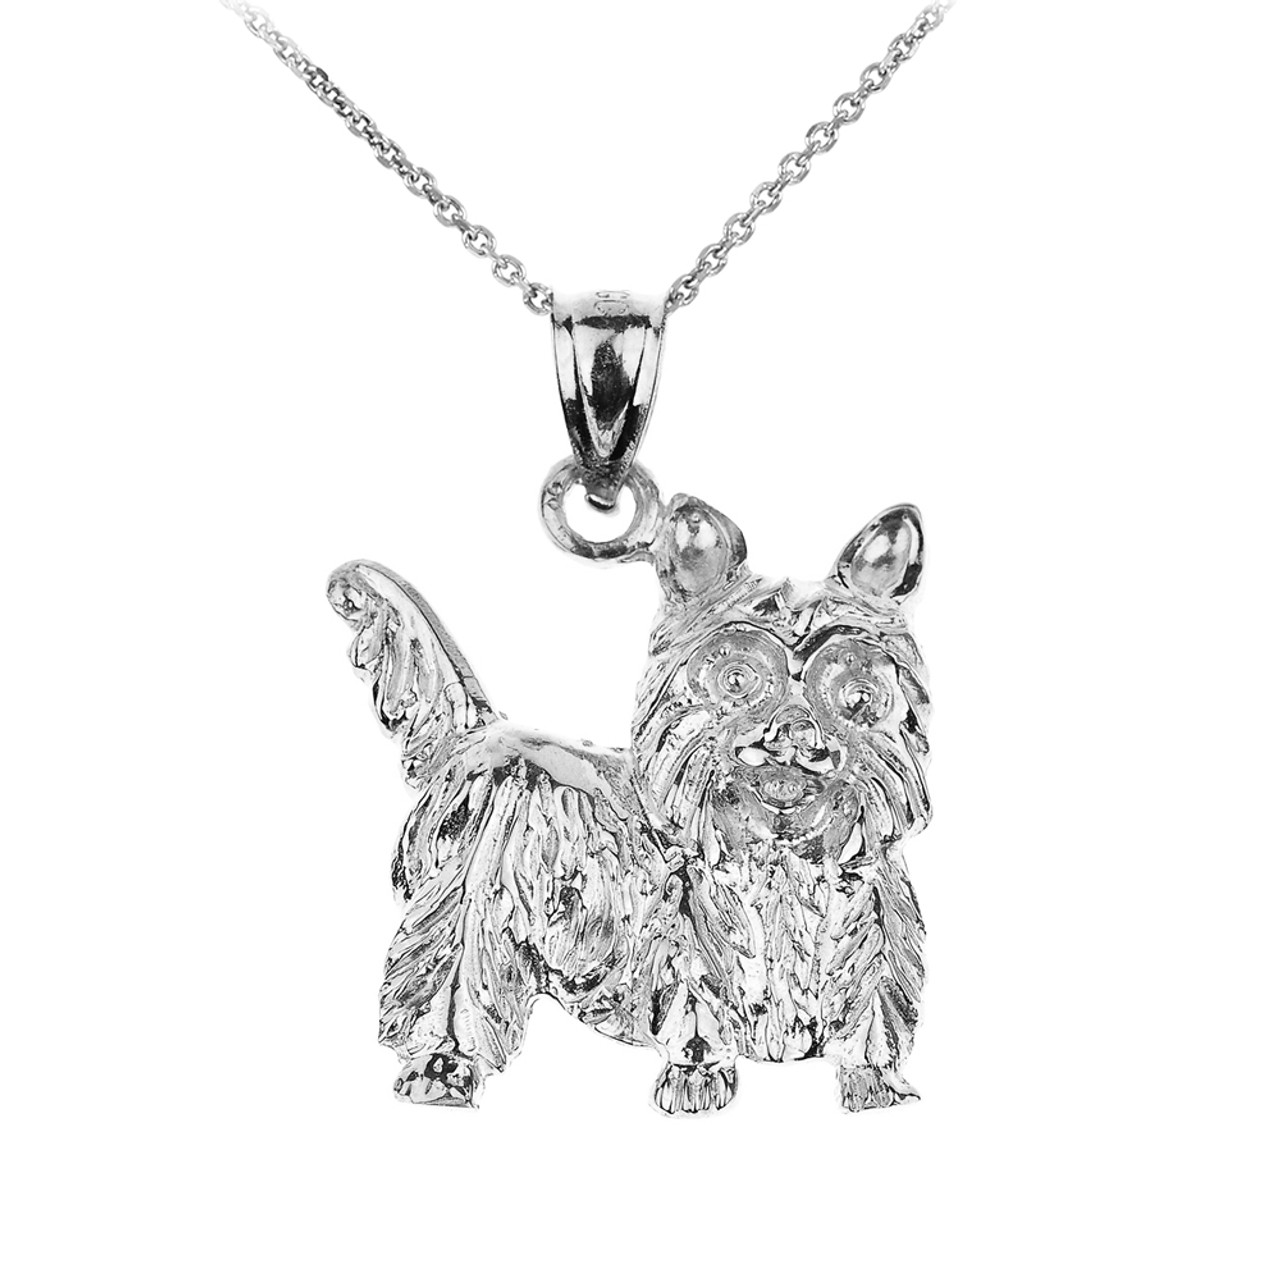 necklaces alloy statement on animal day for fashion gift in accessories item pendant women mother mama s necklace from jewelry bear